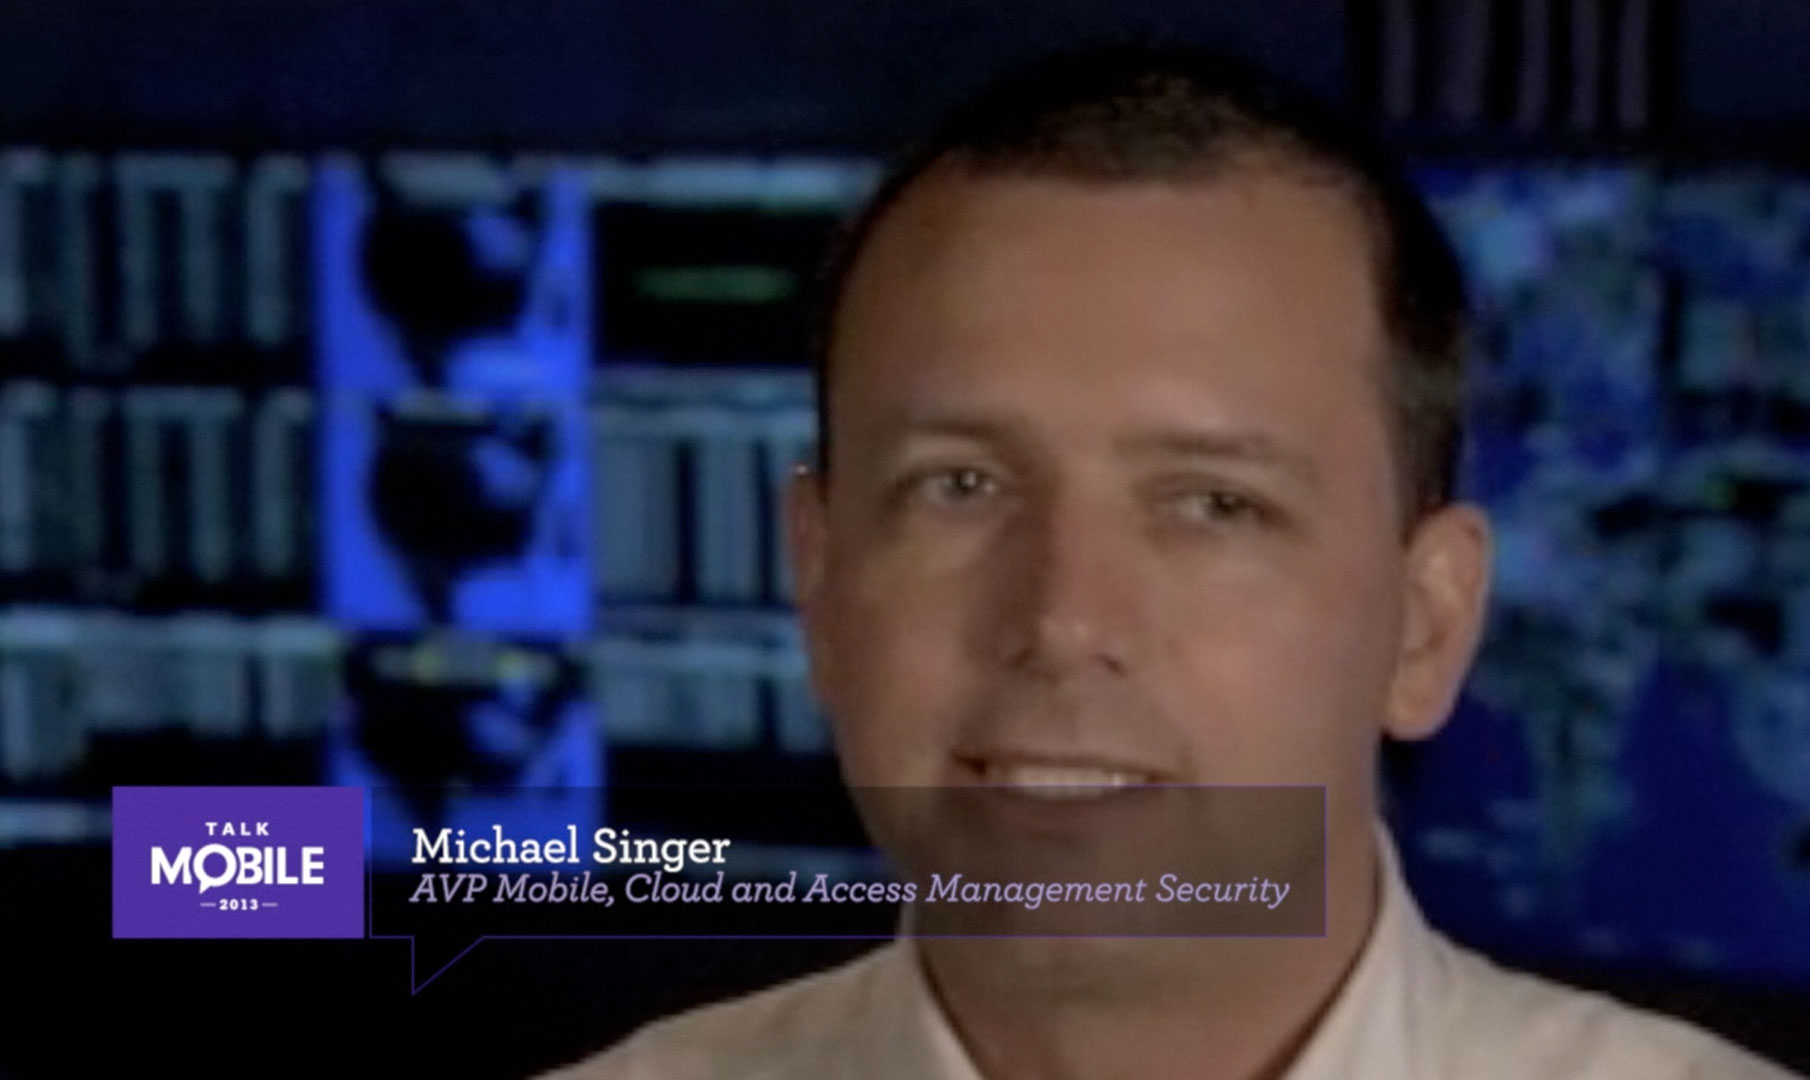 Michael Singer on educating end-users on security - Talk Mobile